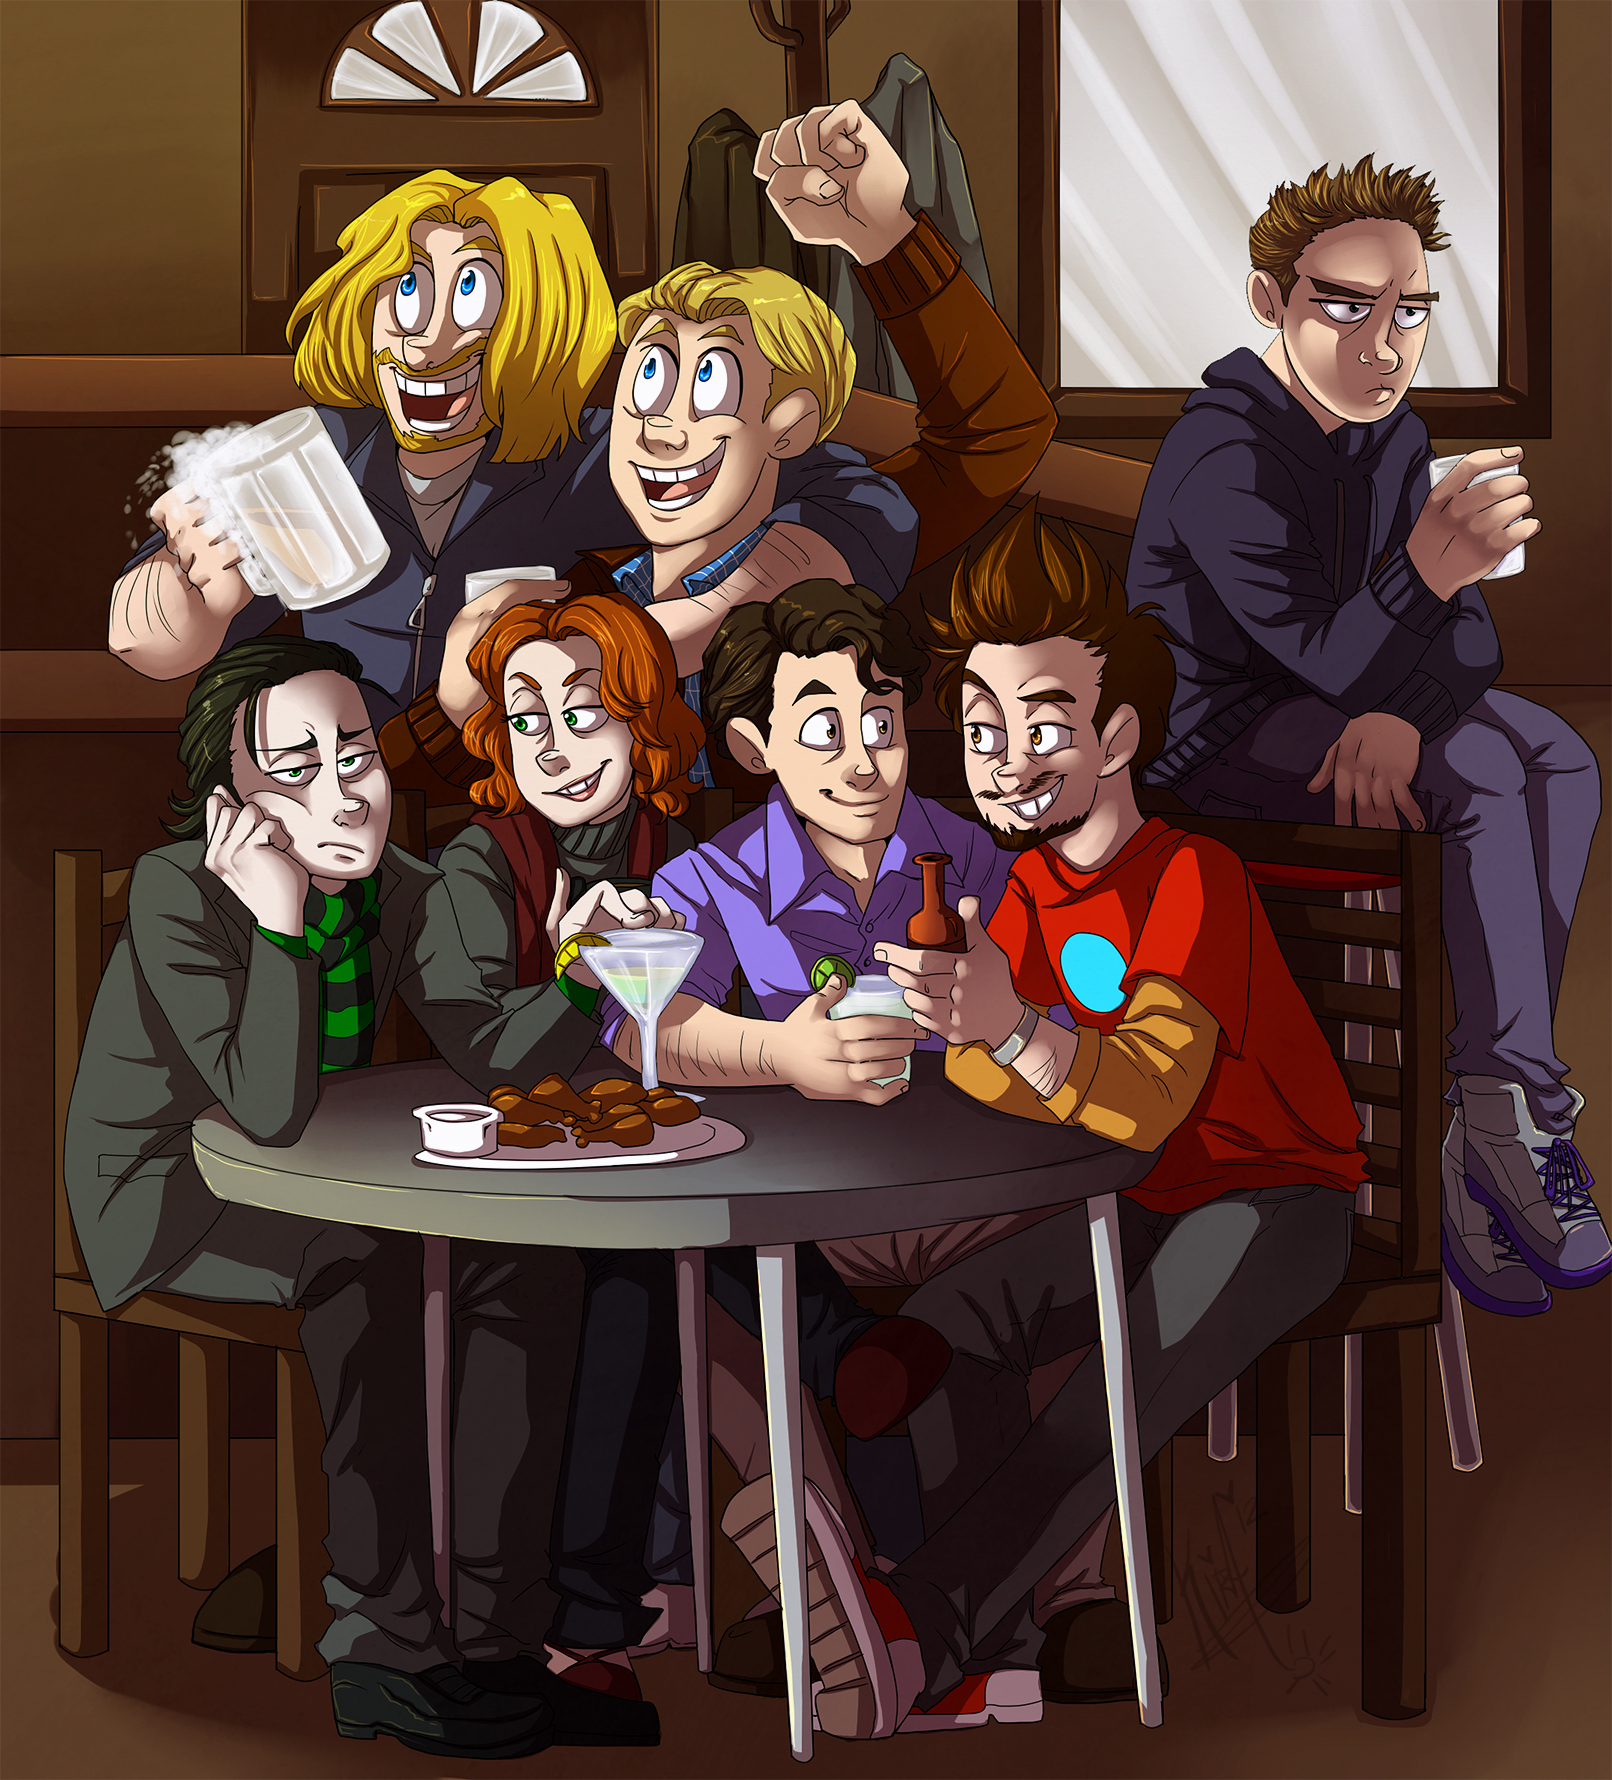 Shawarma Party by vltraviolet